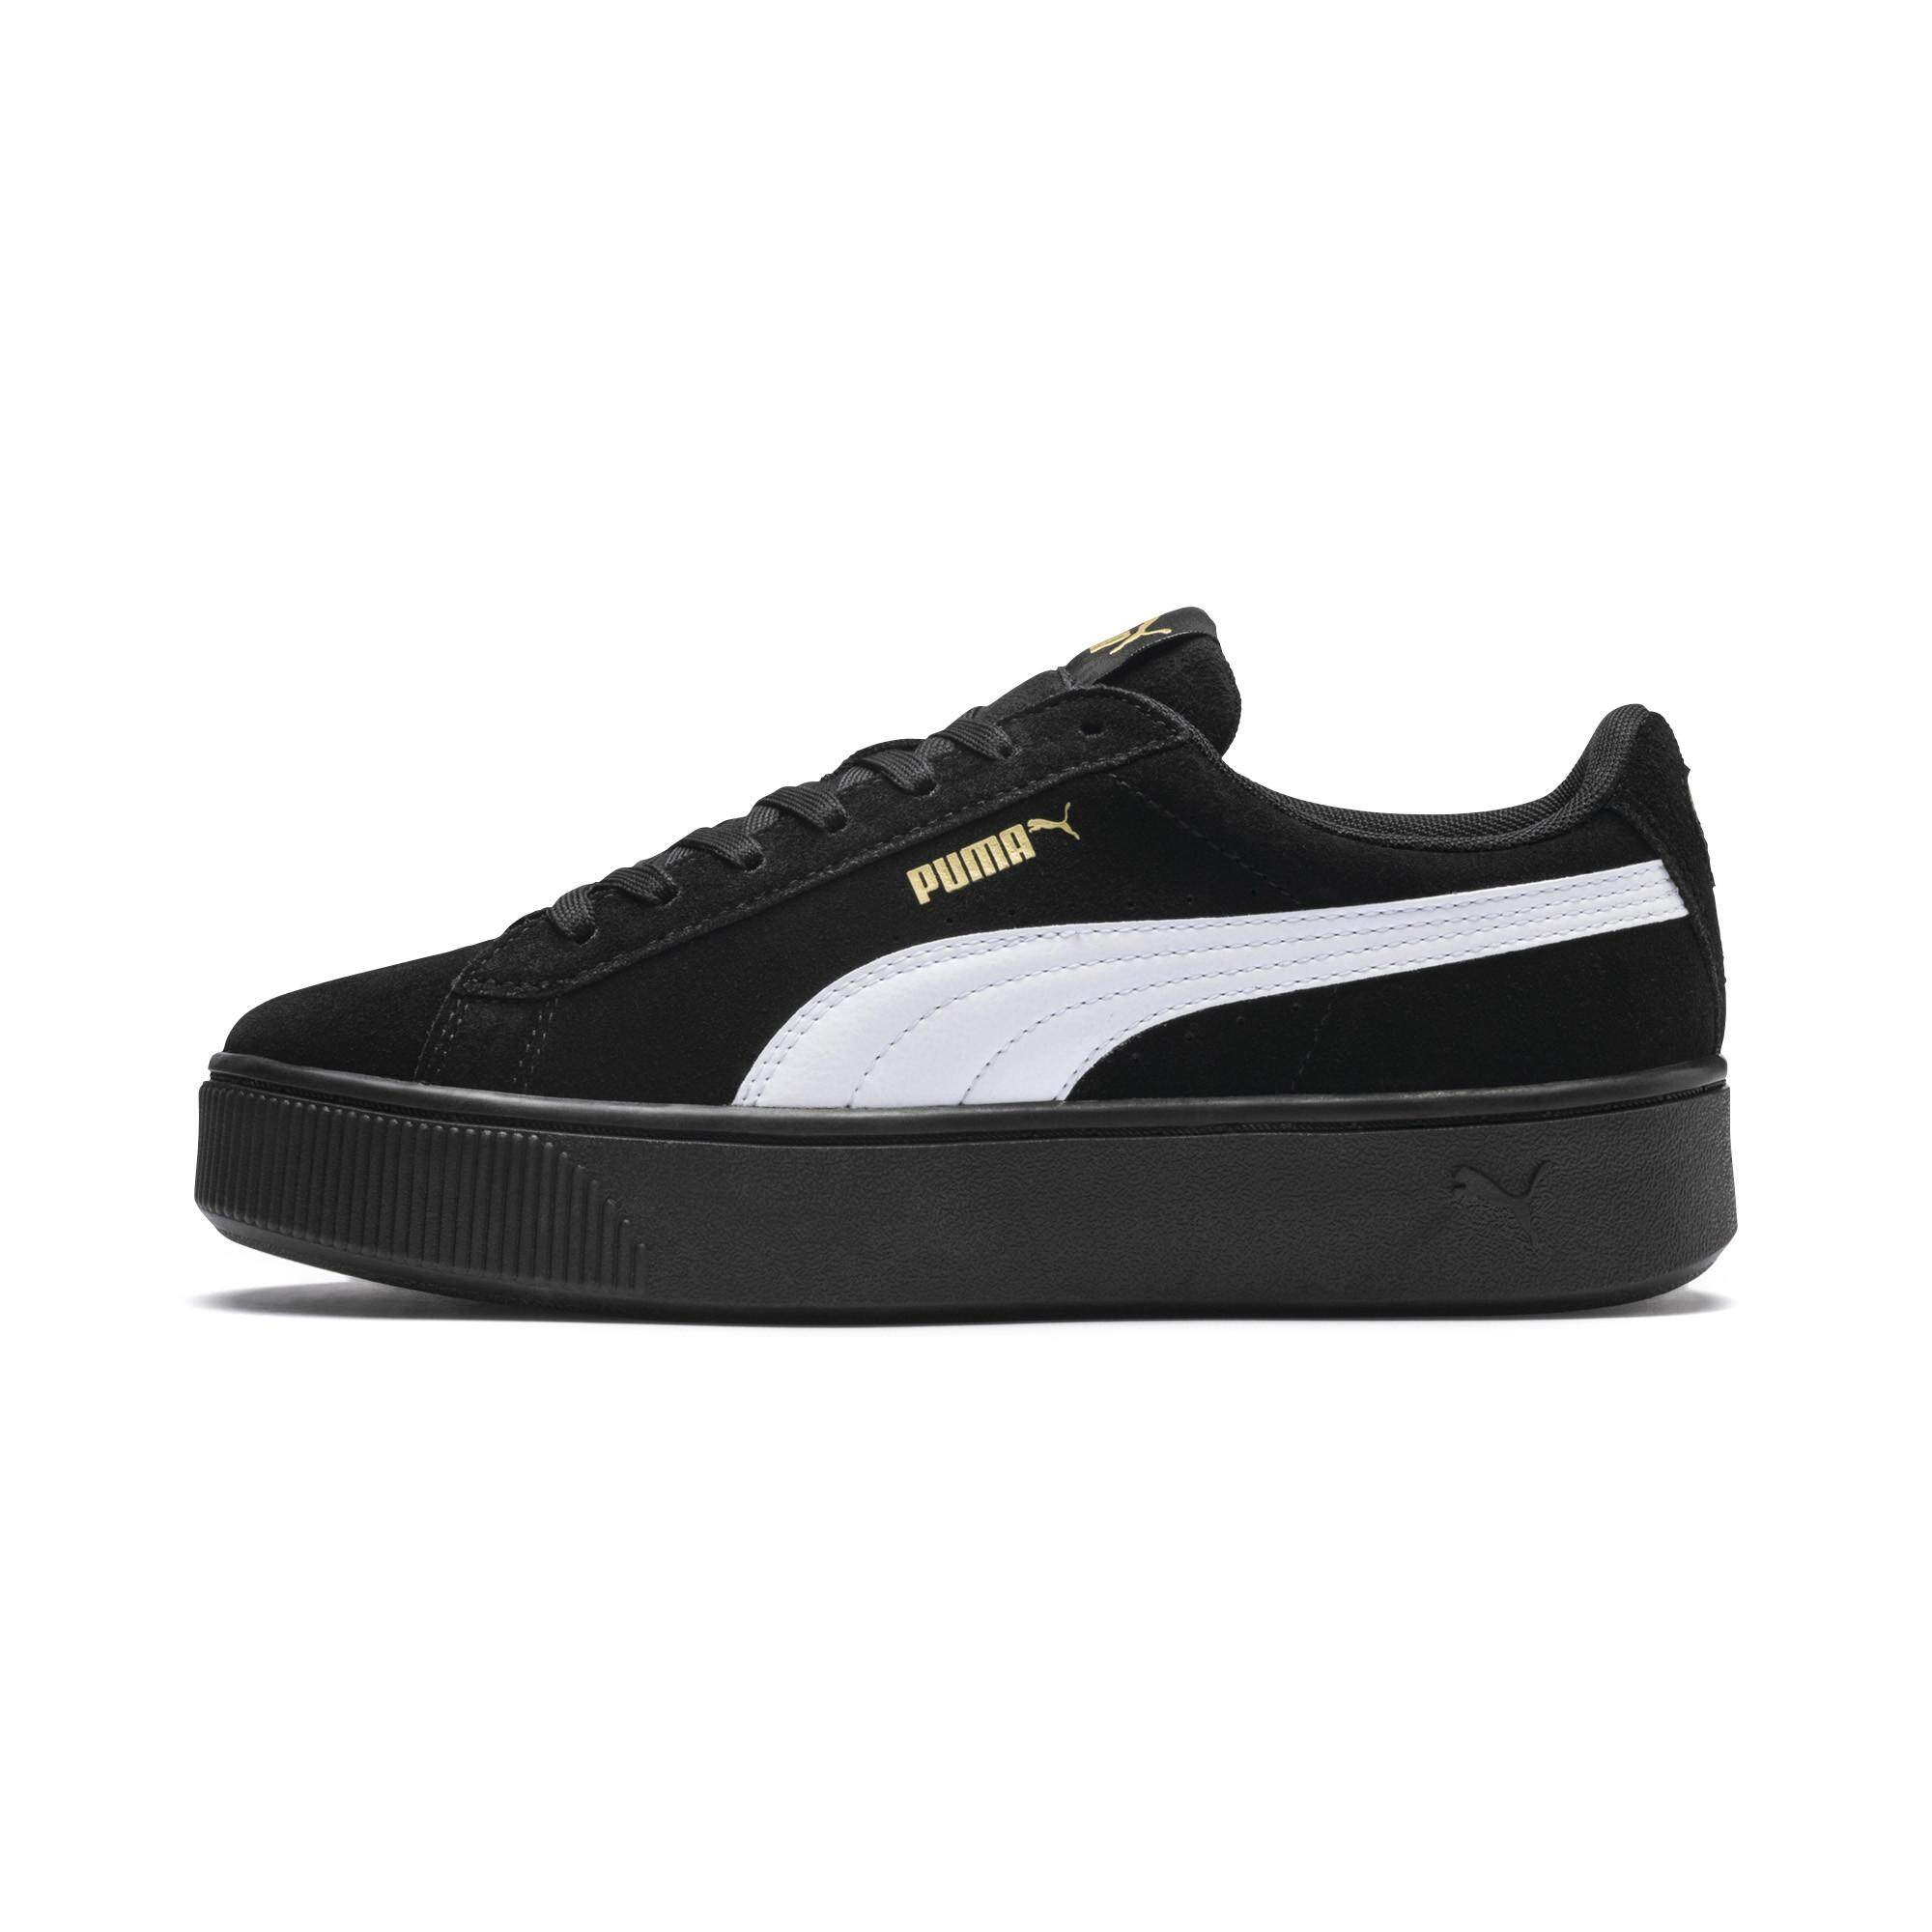 huge selection of 1bf3d b5ea2 PUMA PUMA Vikky Stacked Suede Women's Sneakers 369144